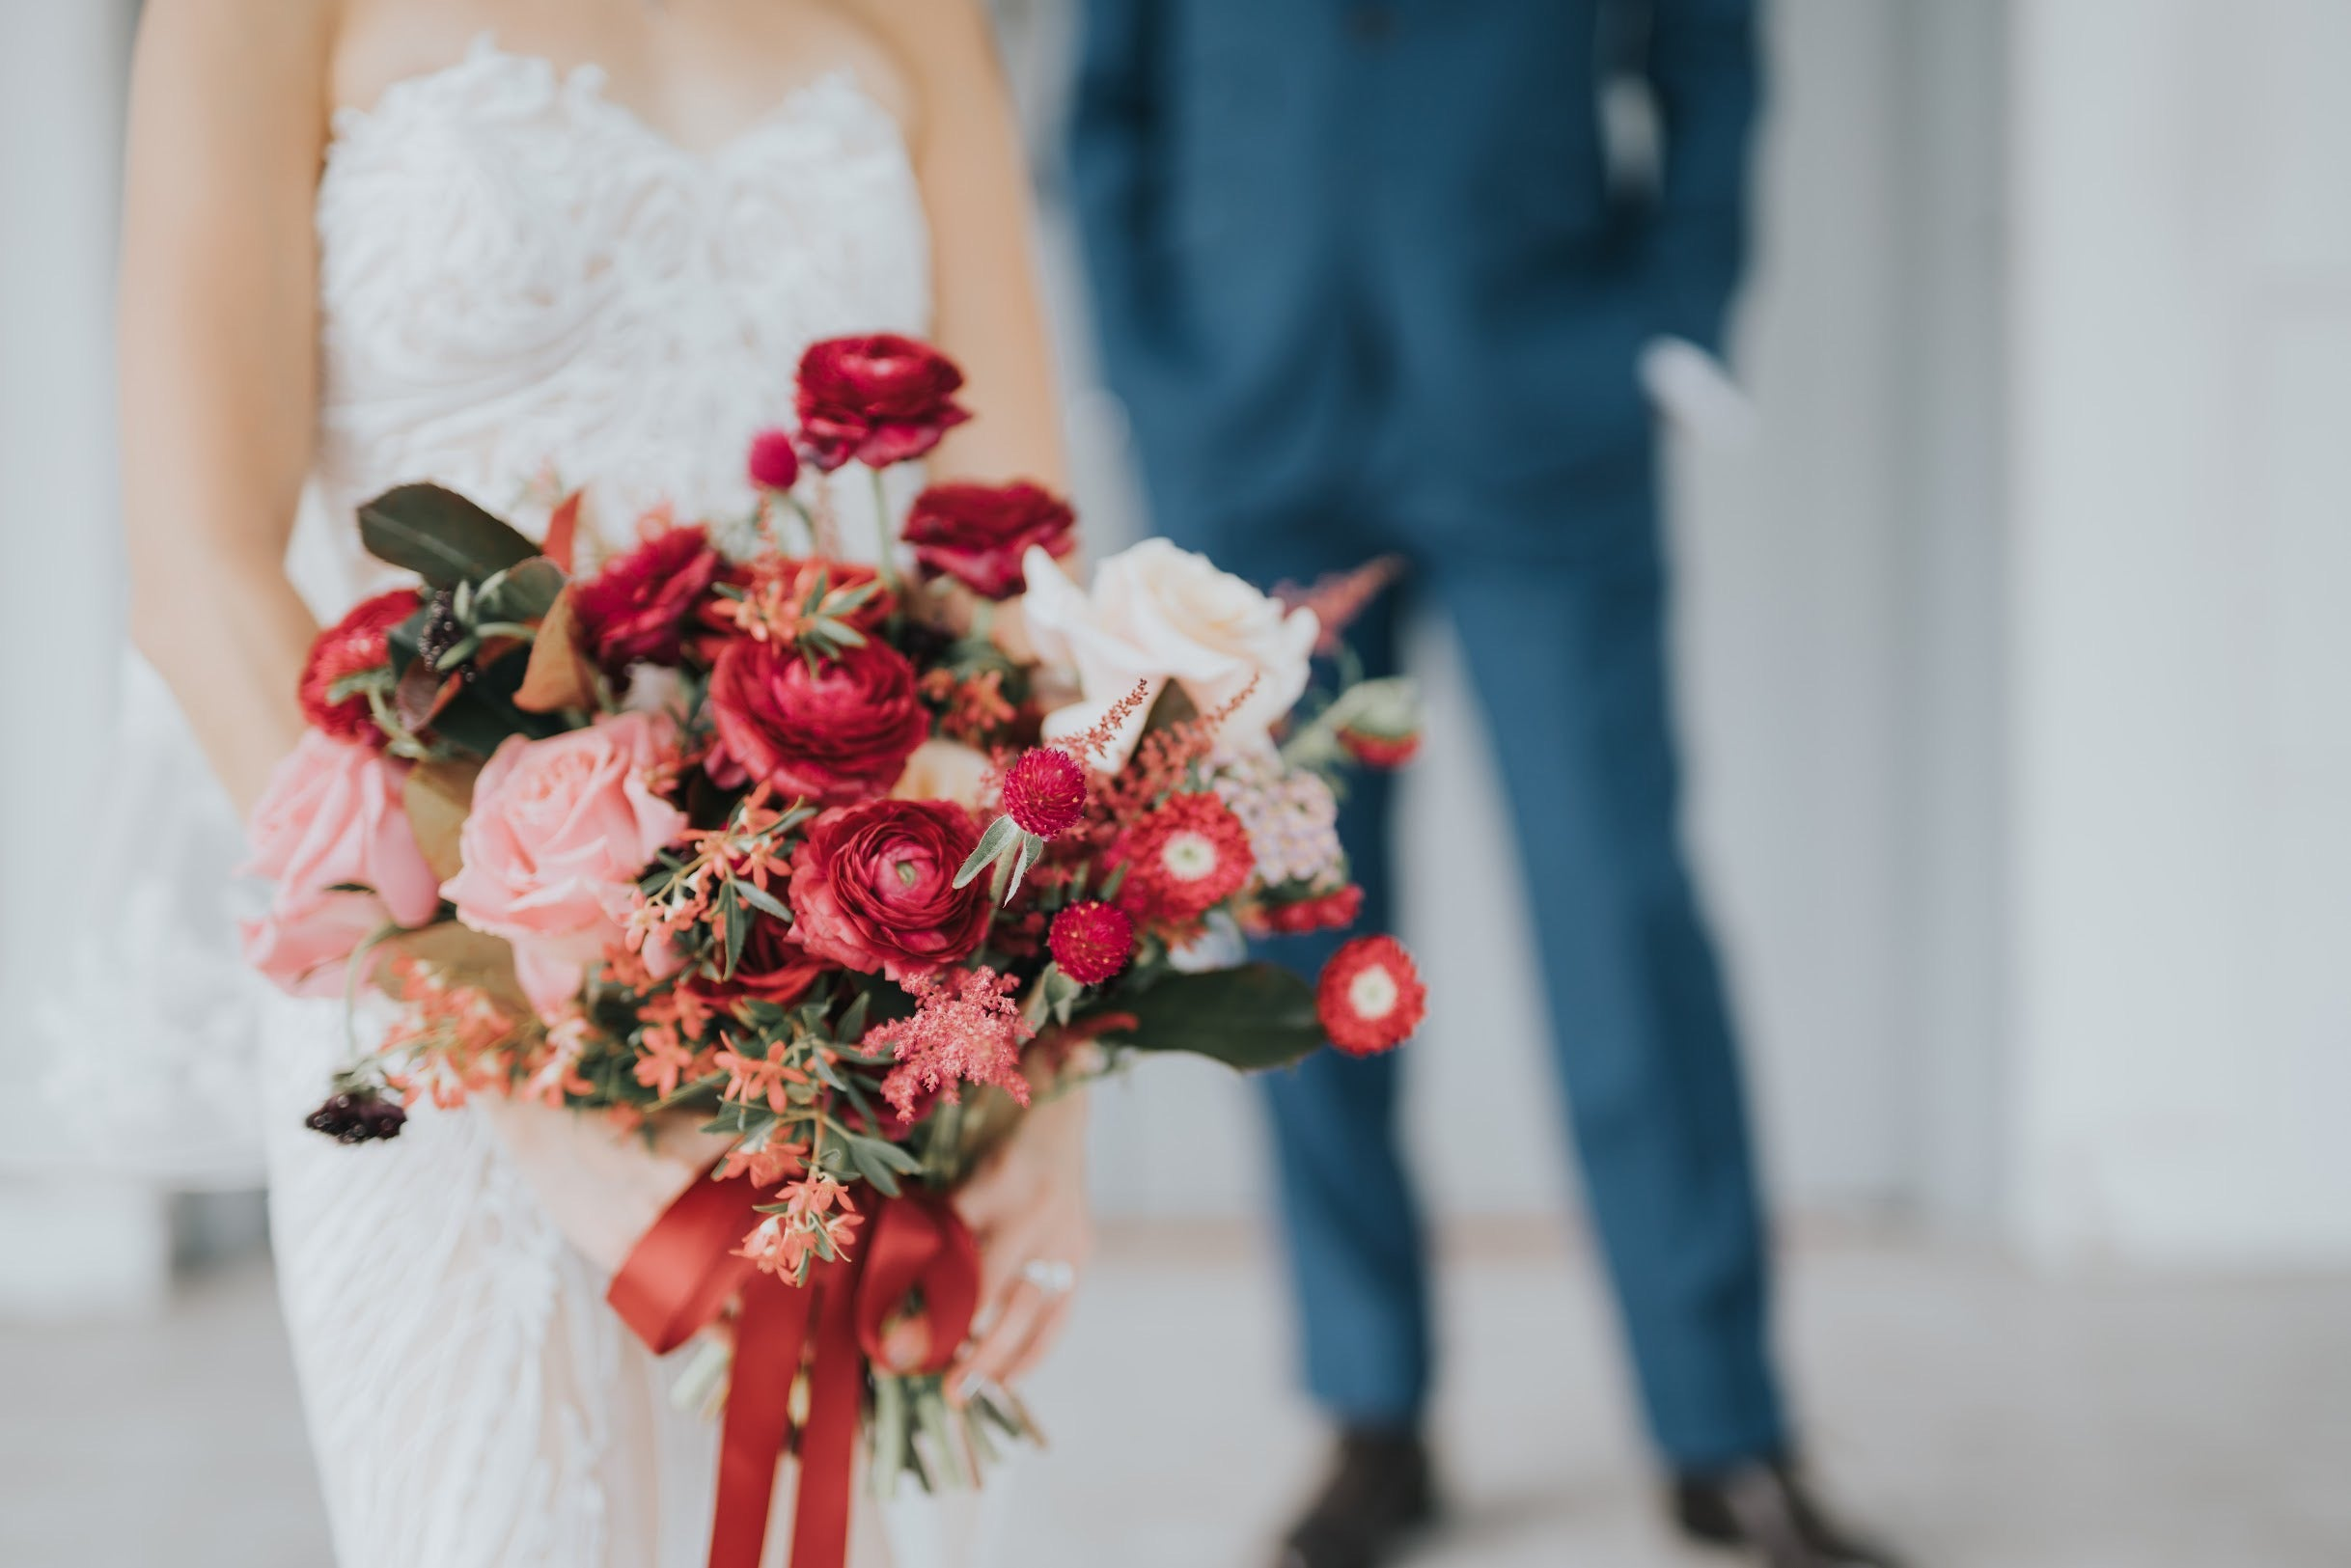 Close up of bride bouquet tied with red ribbon with groom in blue suit in background